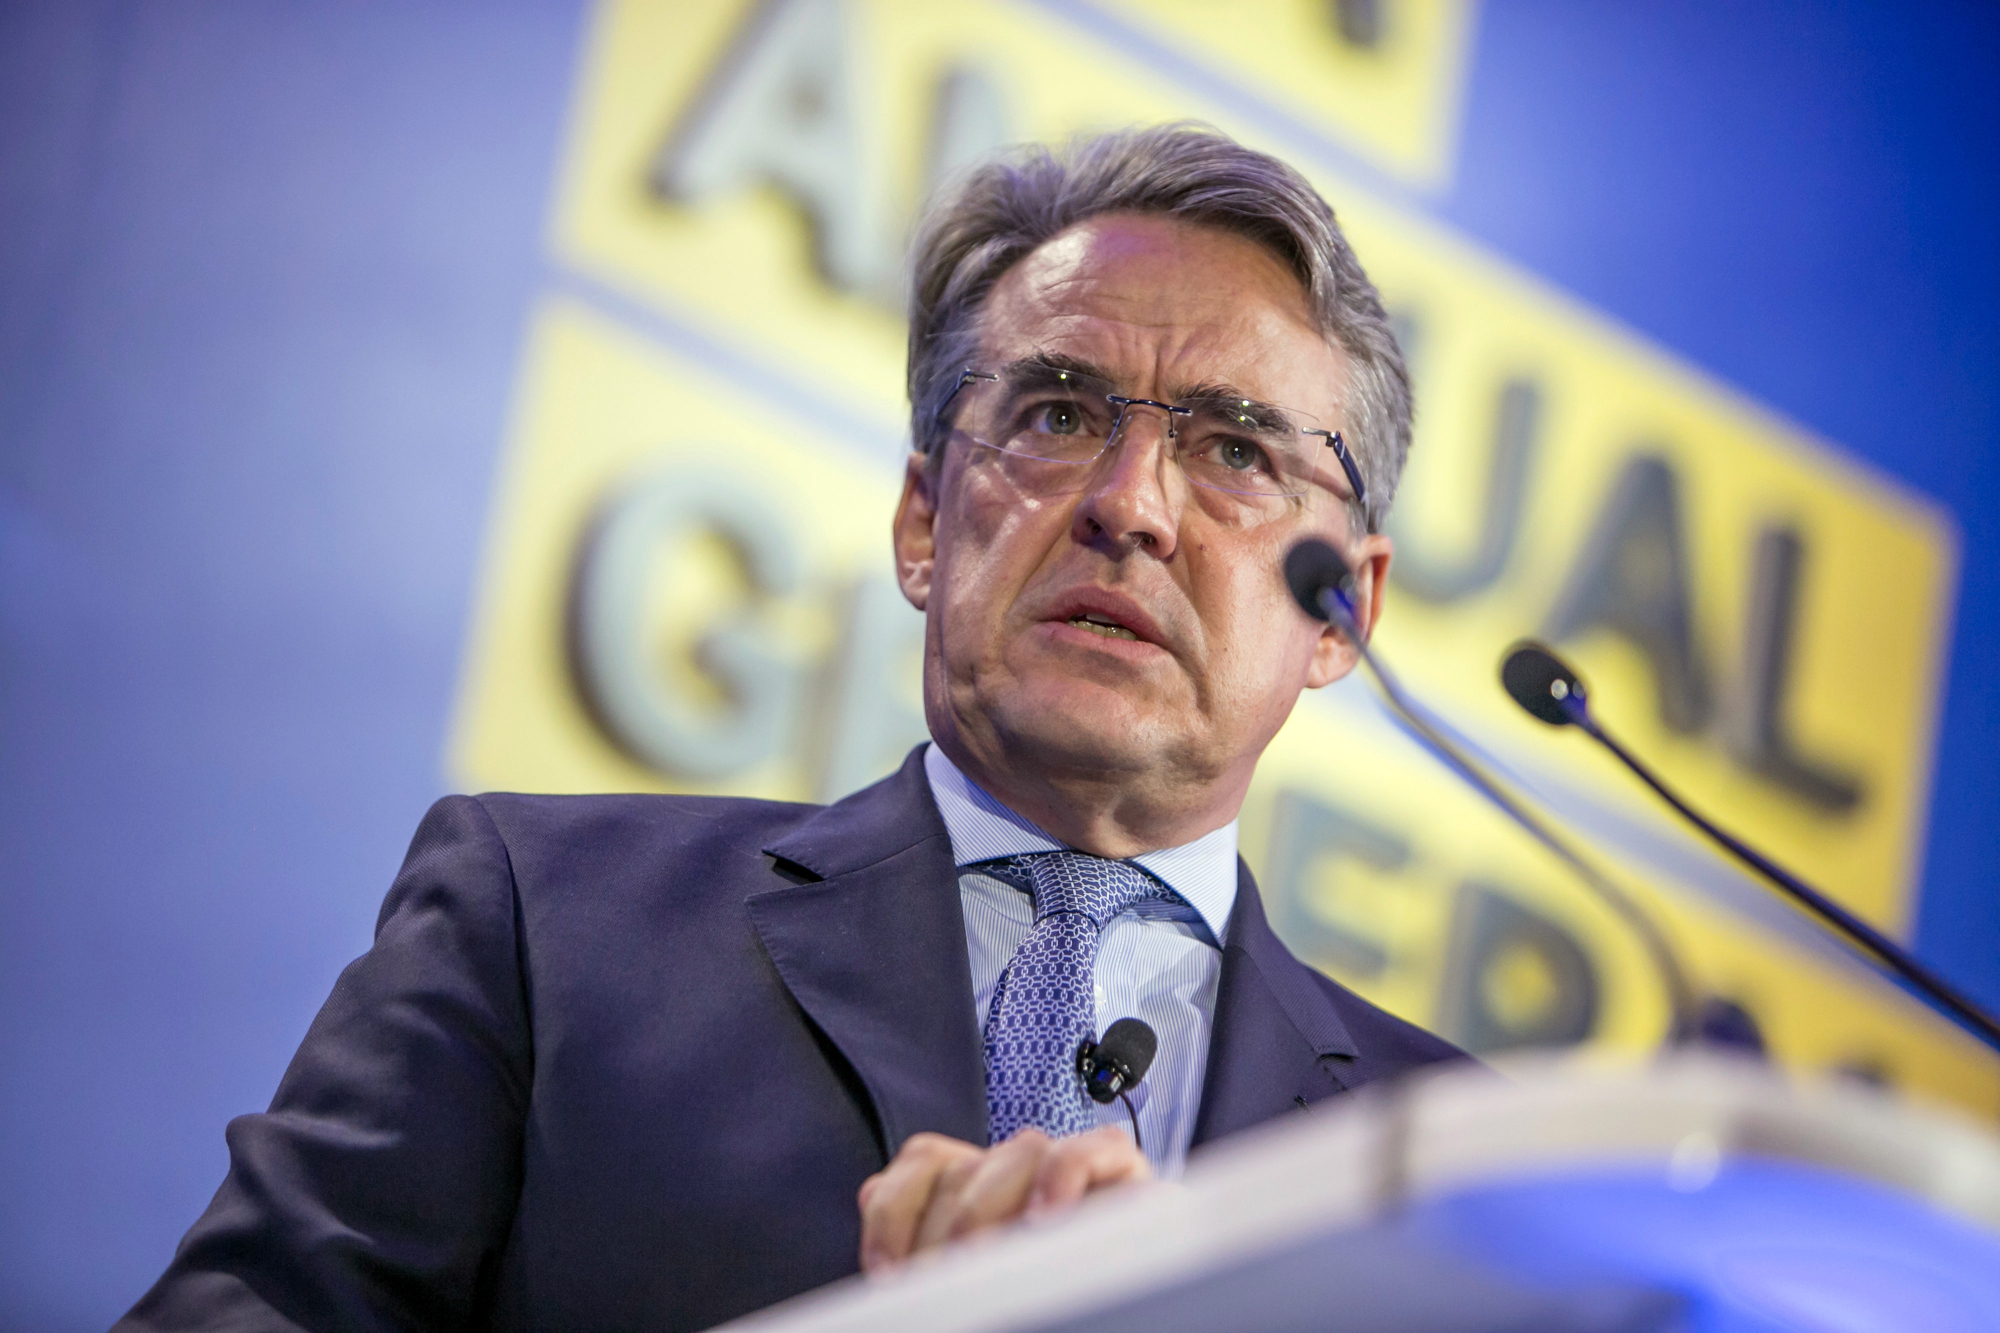 Alexandre de Juniac, director general of the International Air Transport Association, addresses its annual general meeting in Seoul on Sunday. | BLOOMBERG